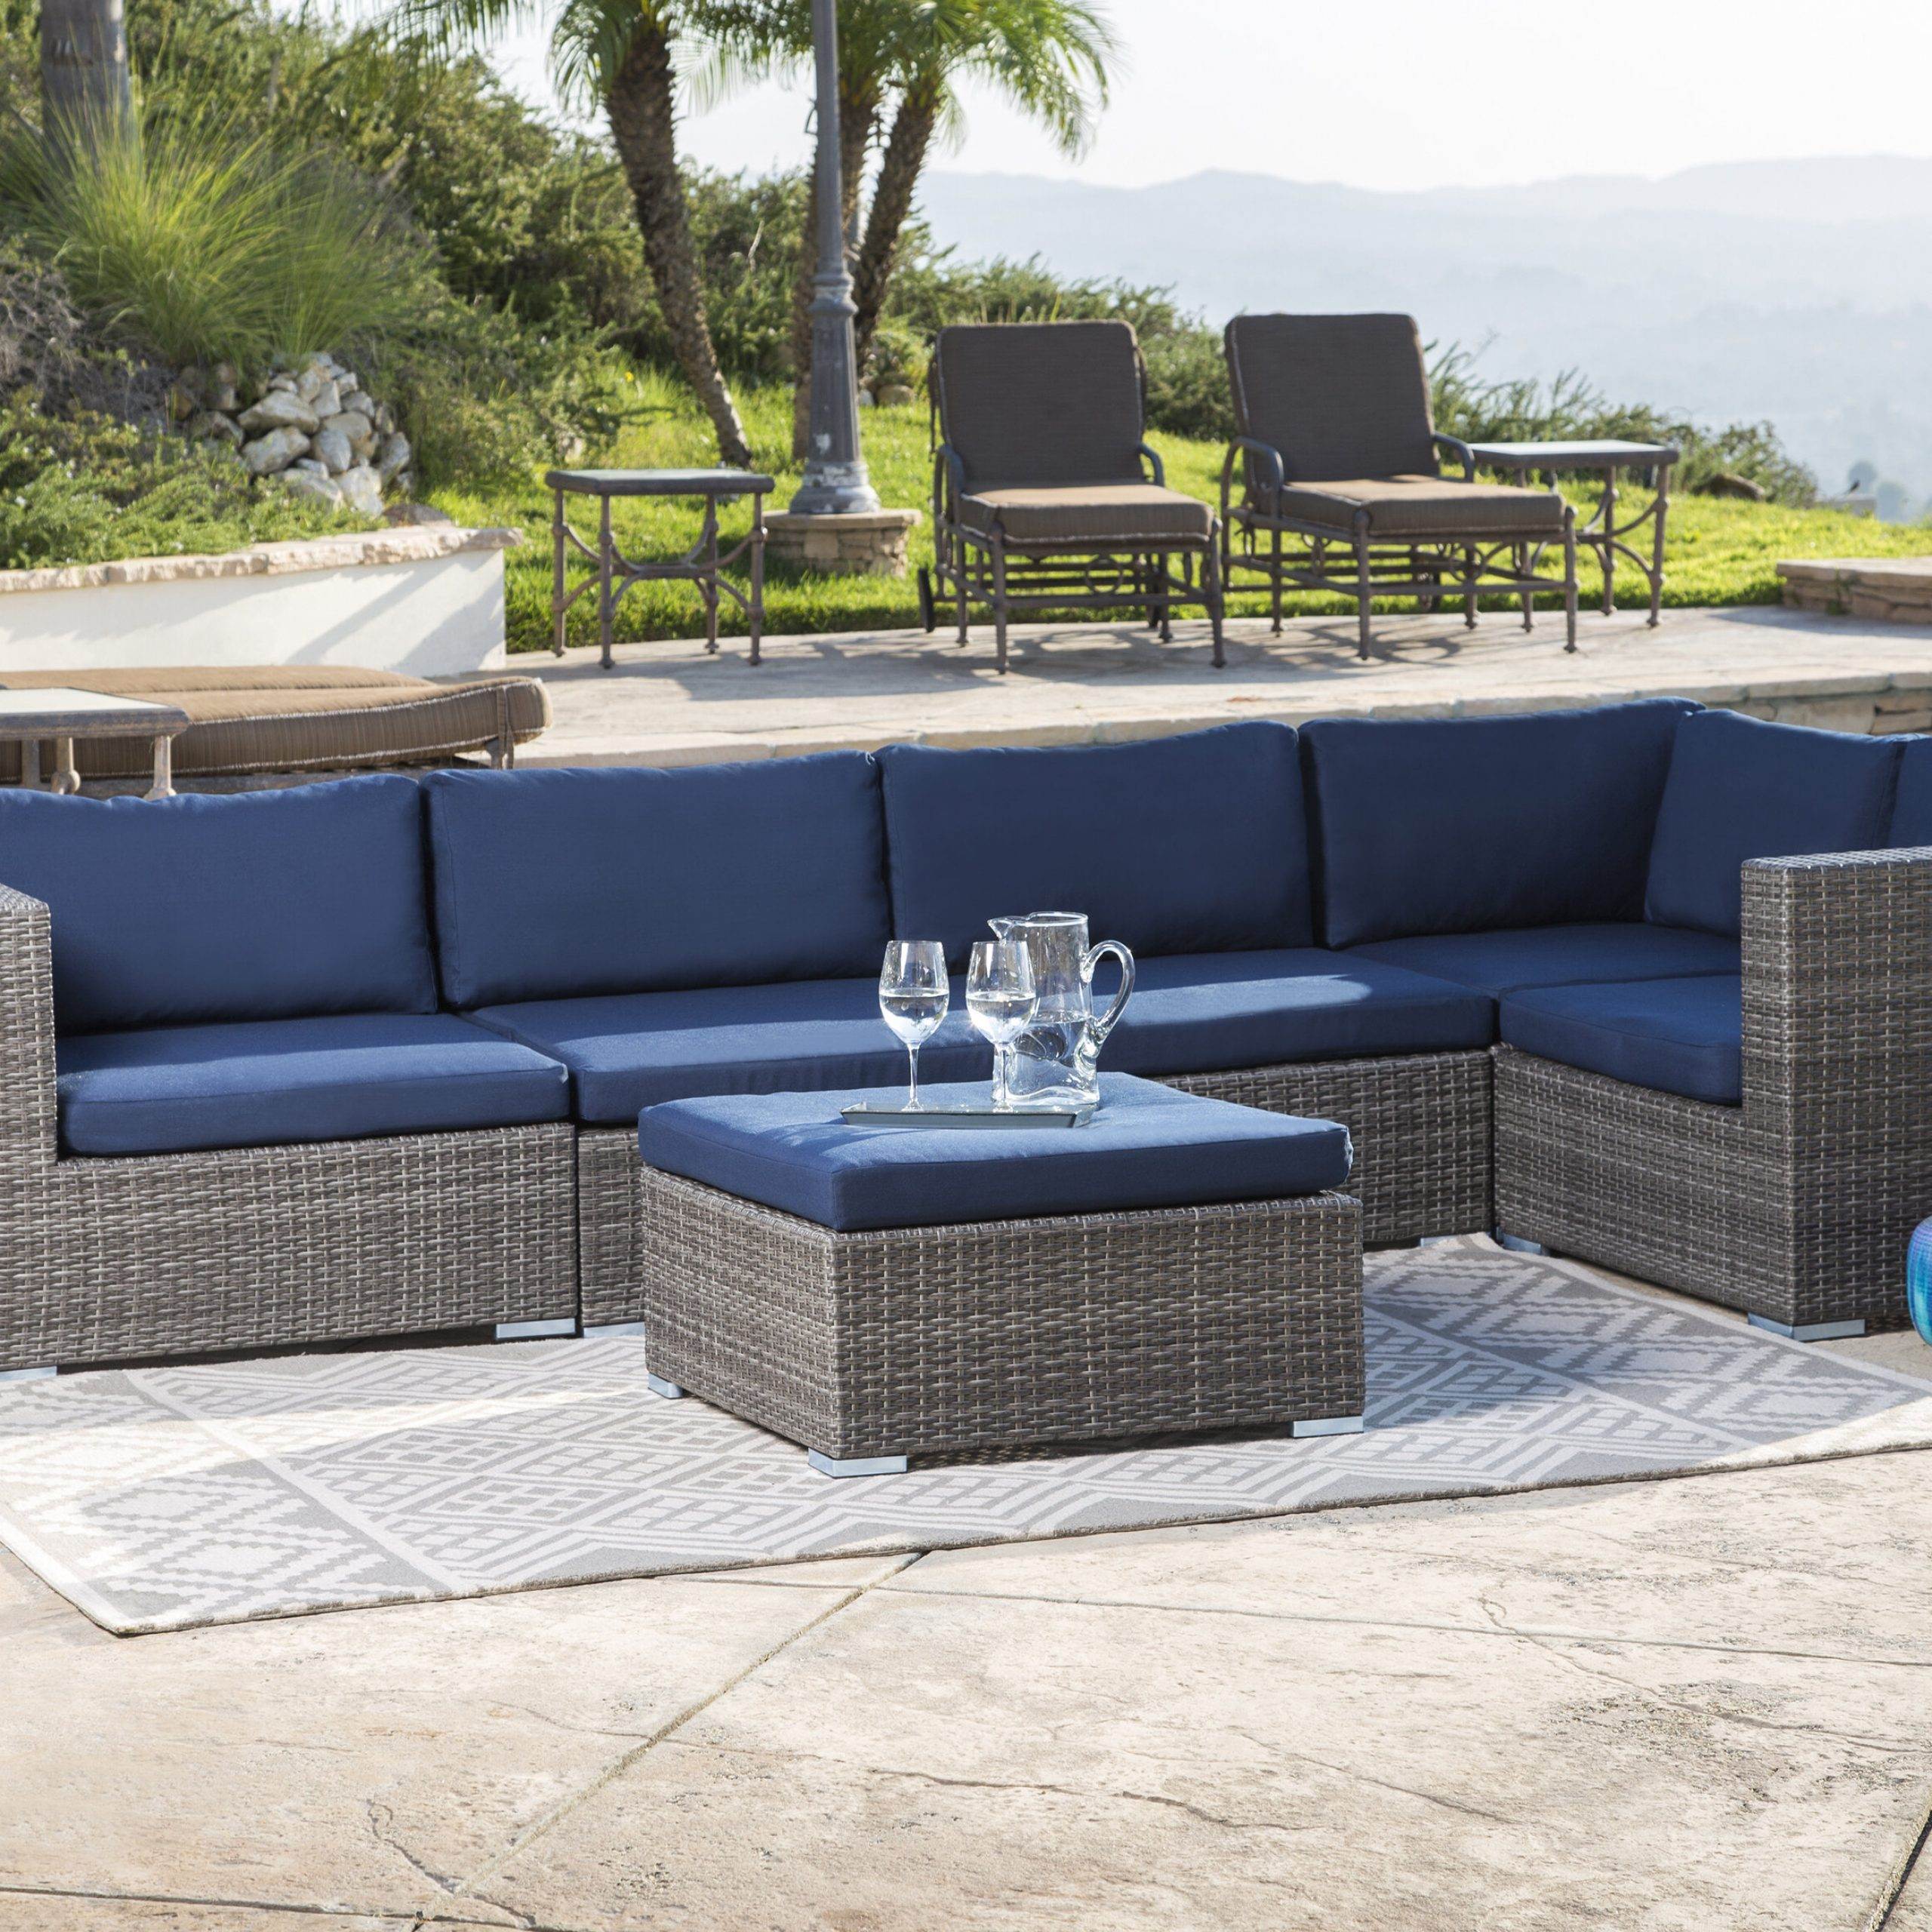 Popular Vallauris Storage Patio Sectionals With Cushions Pertaining To Ostrowski Patio Sectional With Cushions (View 13 of 25)